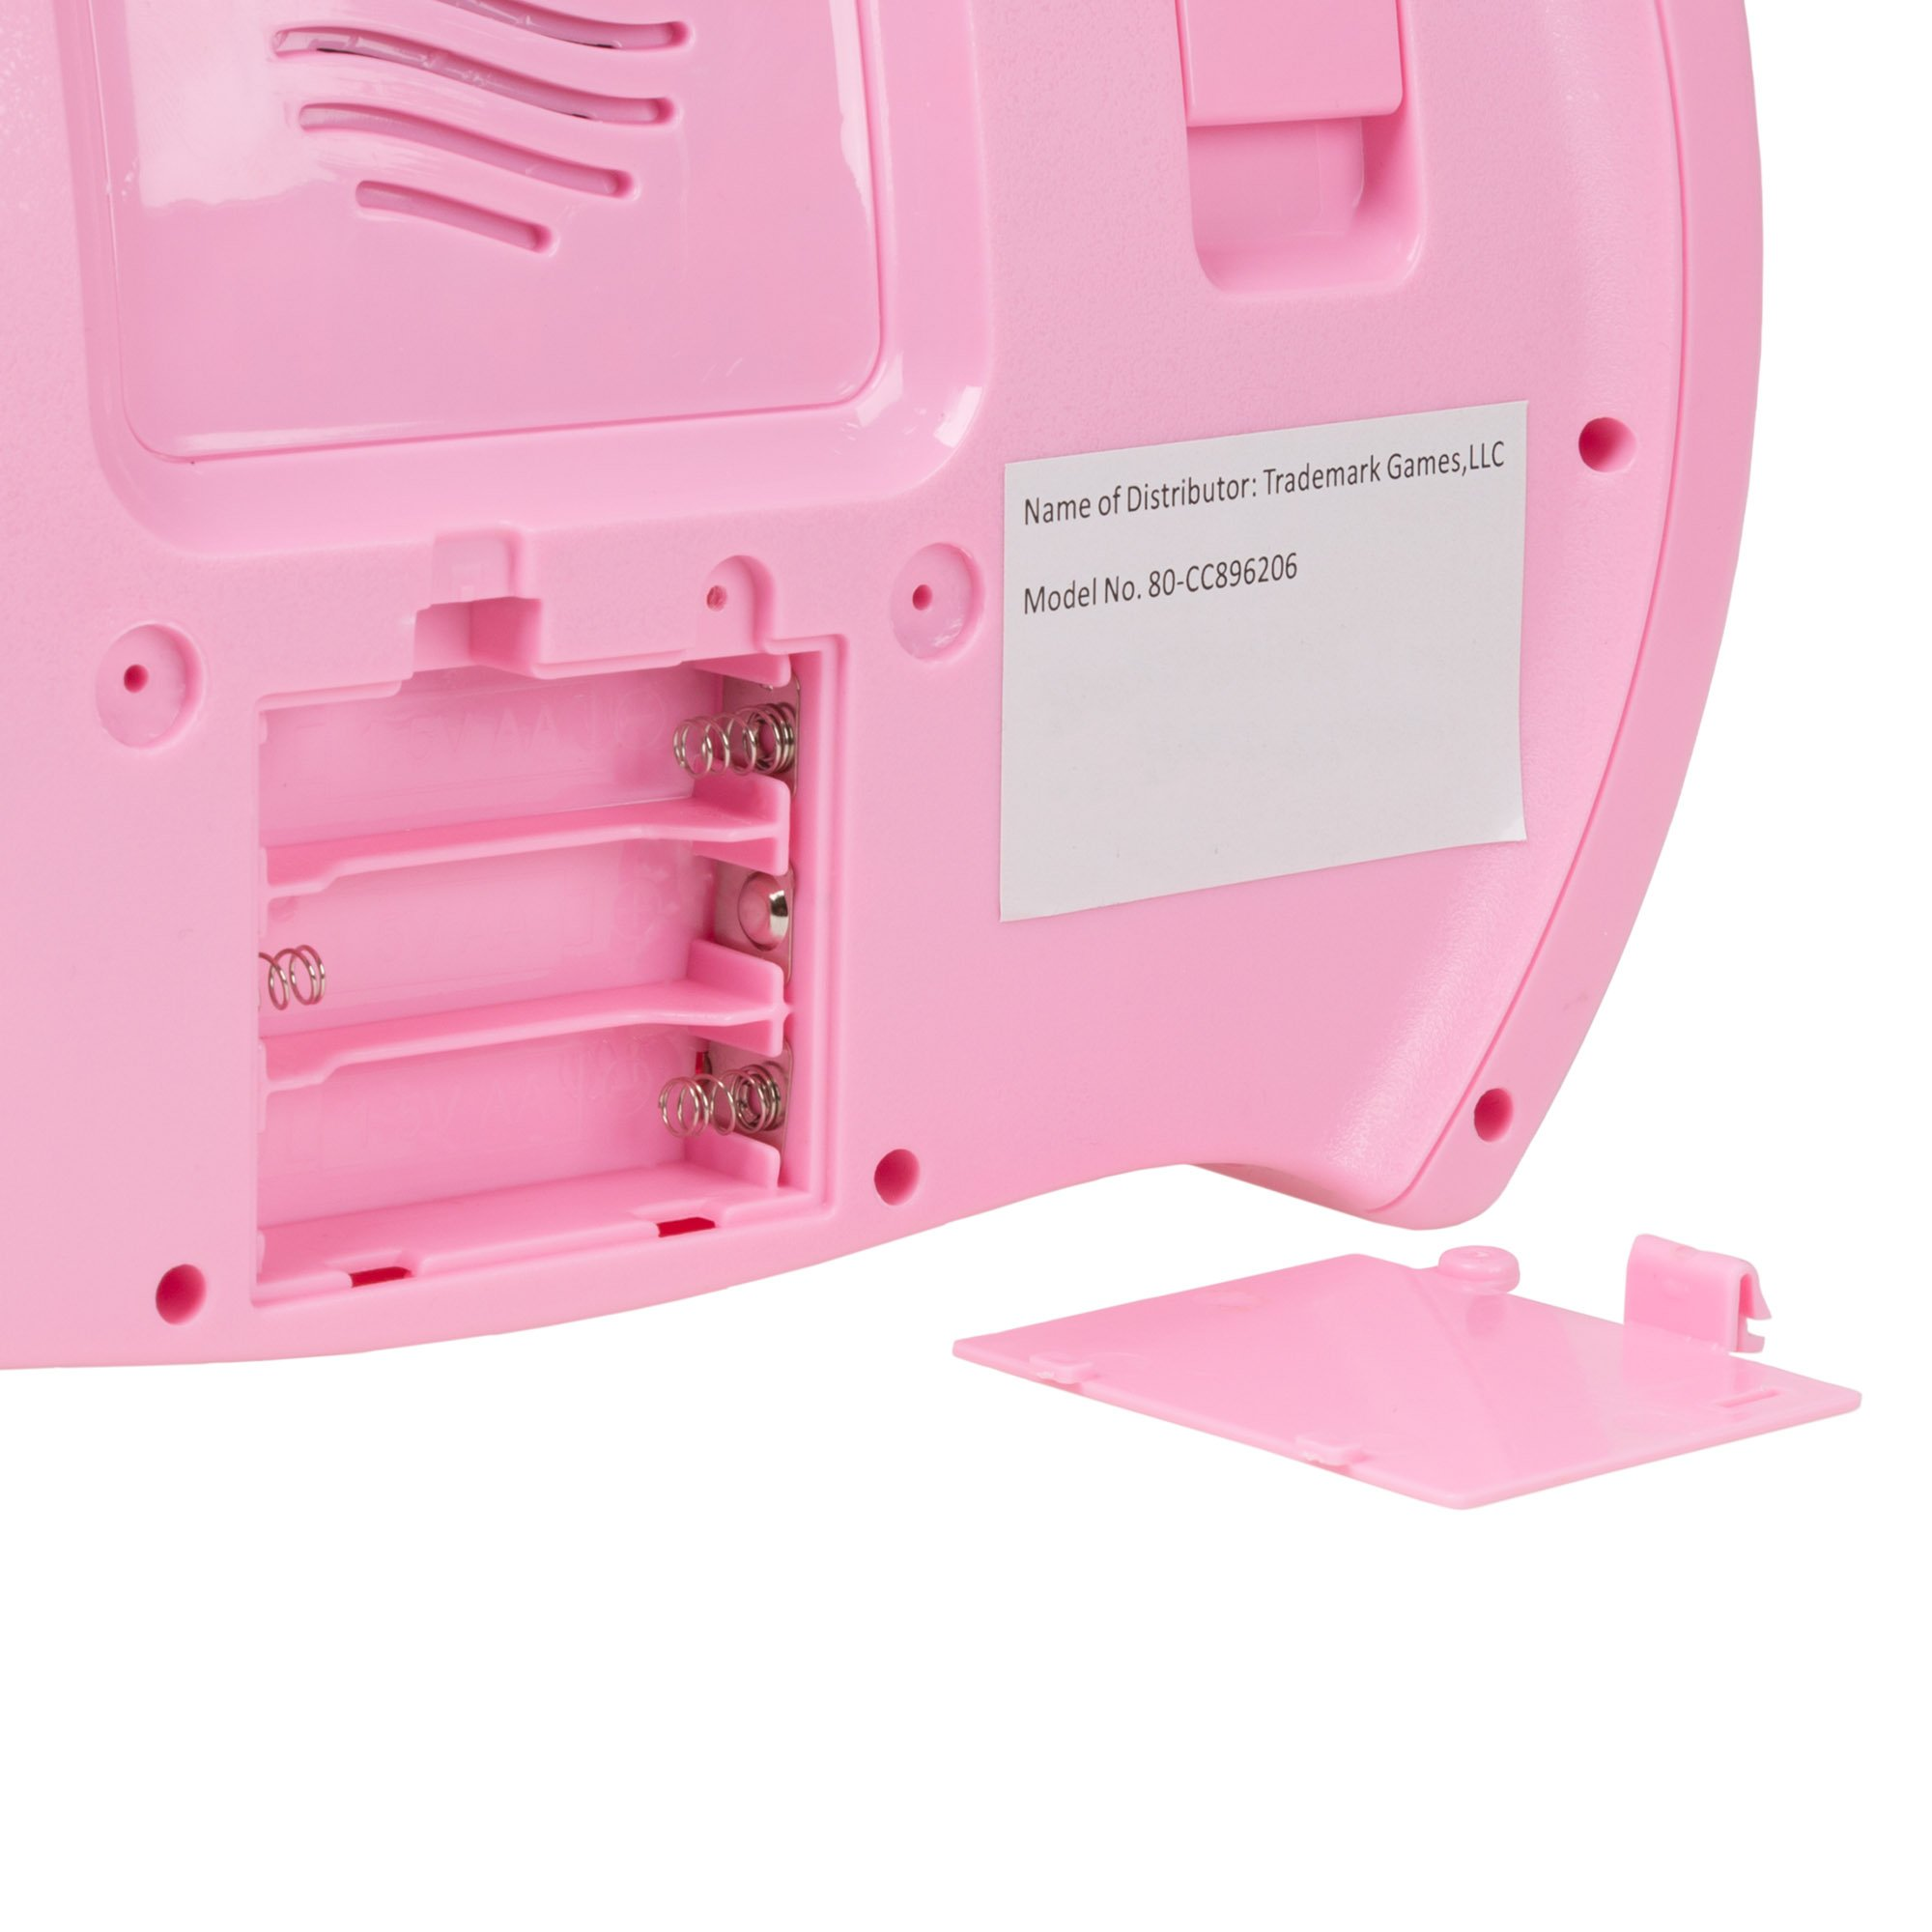 Kids Karaoke Machine with Microphone, Includes Musical Keyboard & Lights - Battery Operated Portable Singing Machine for Boys and Girls by Hey! Play! by Hey!Play! (Image #4)